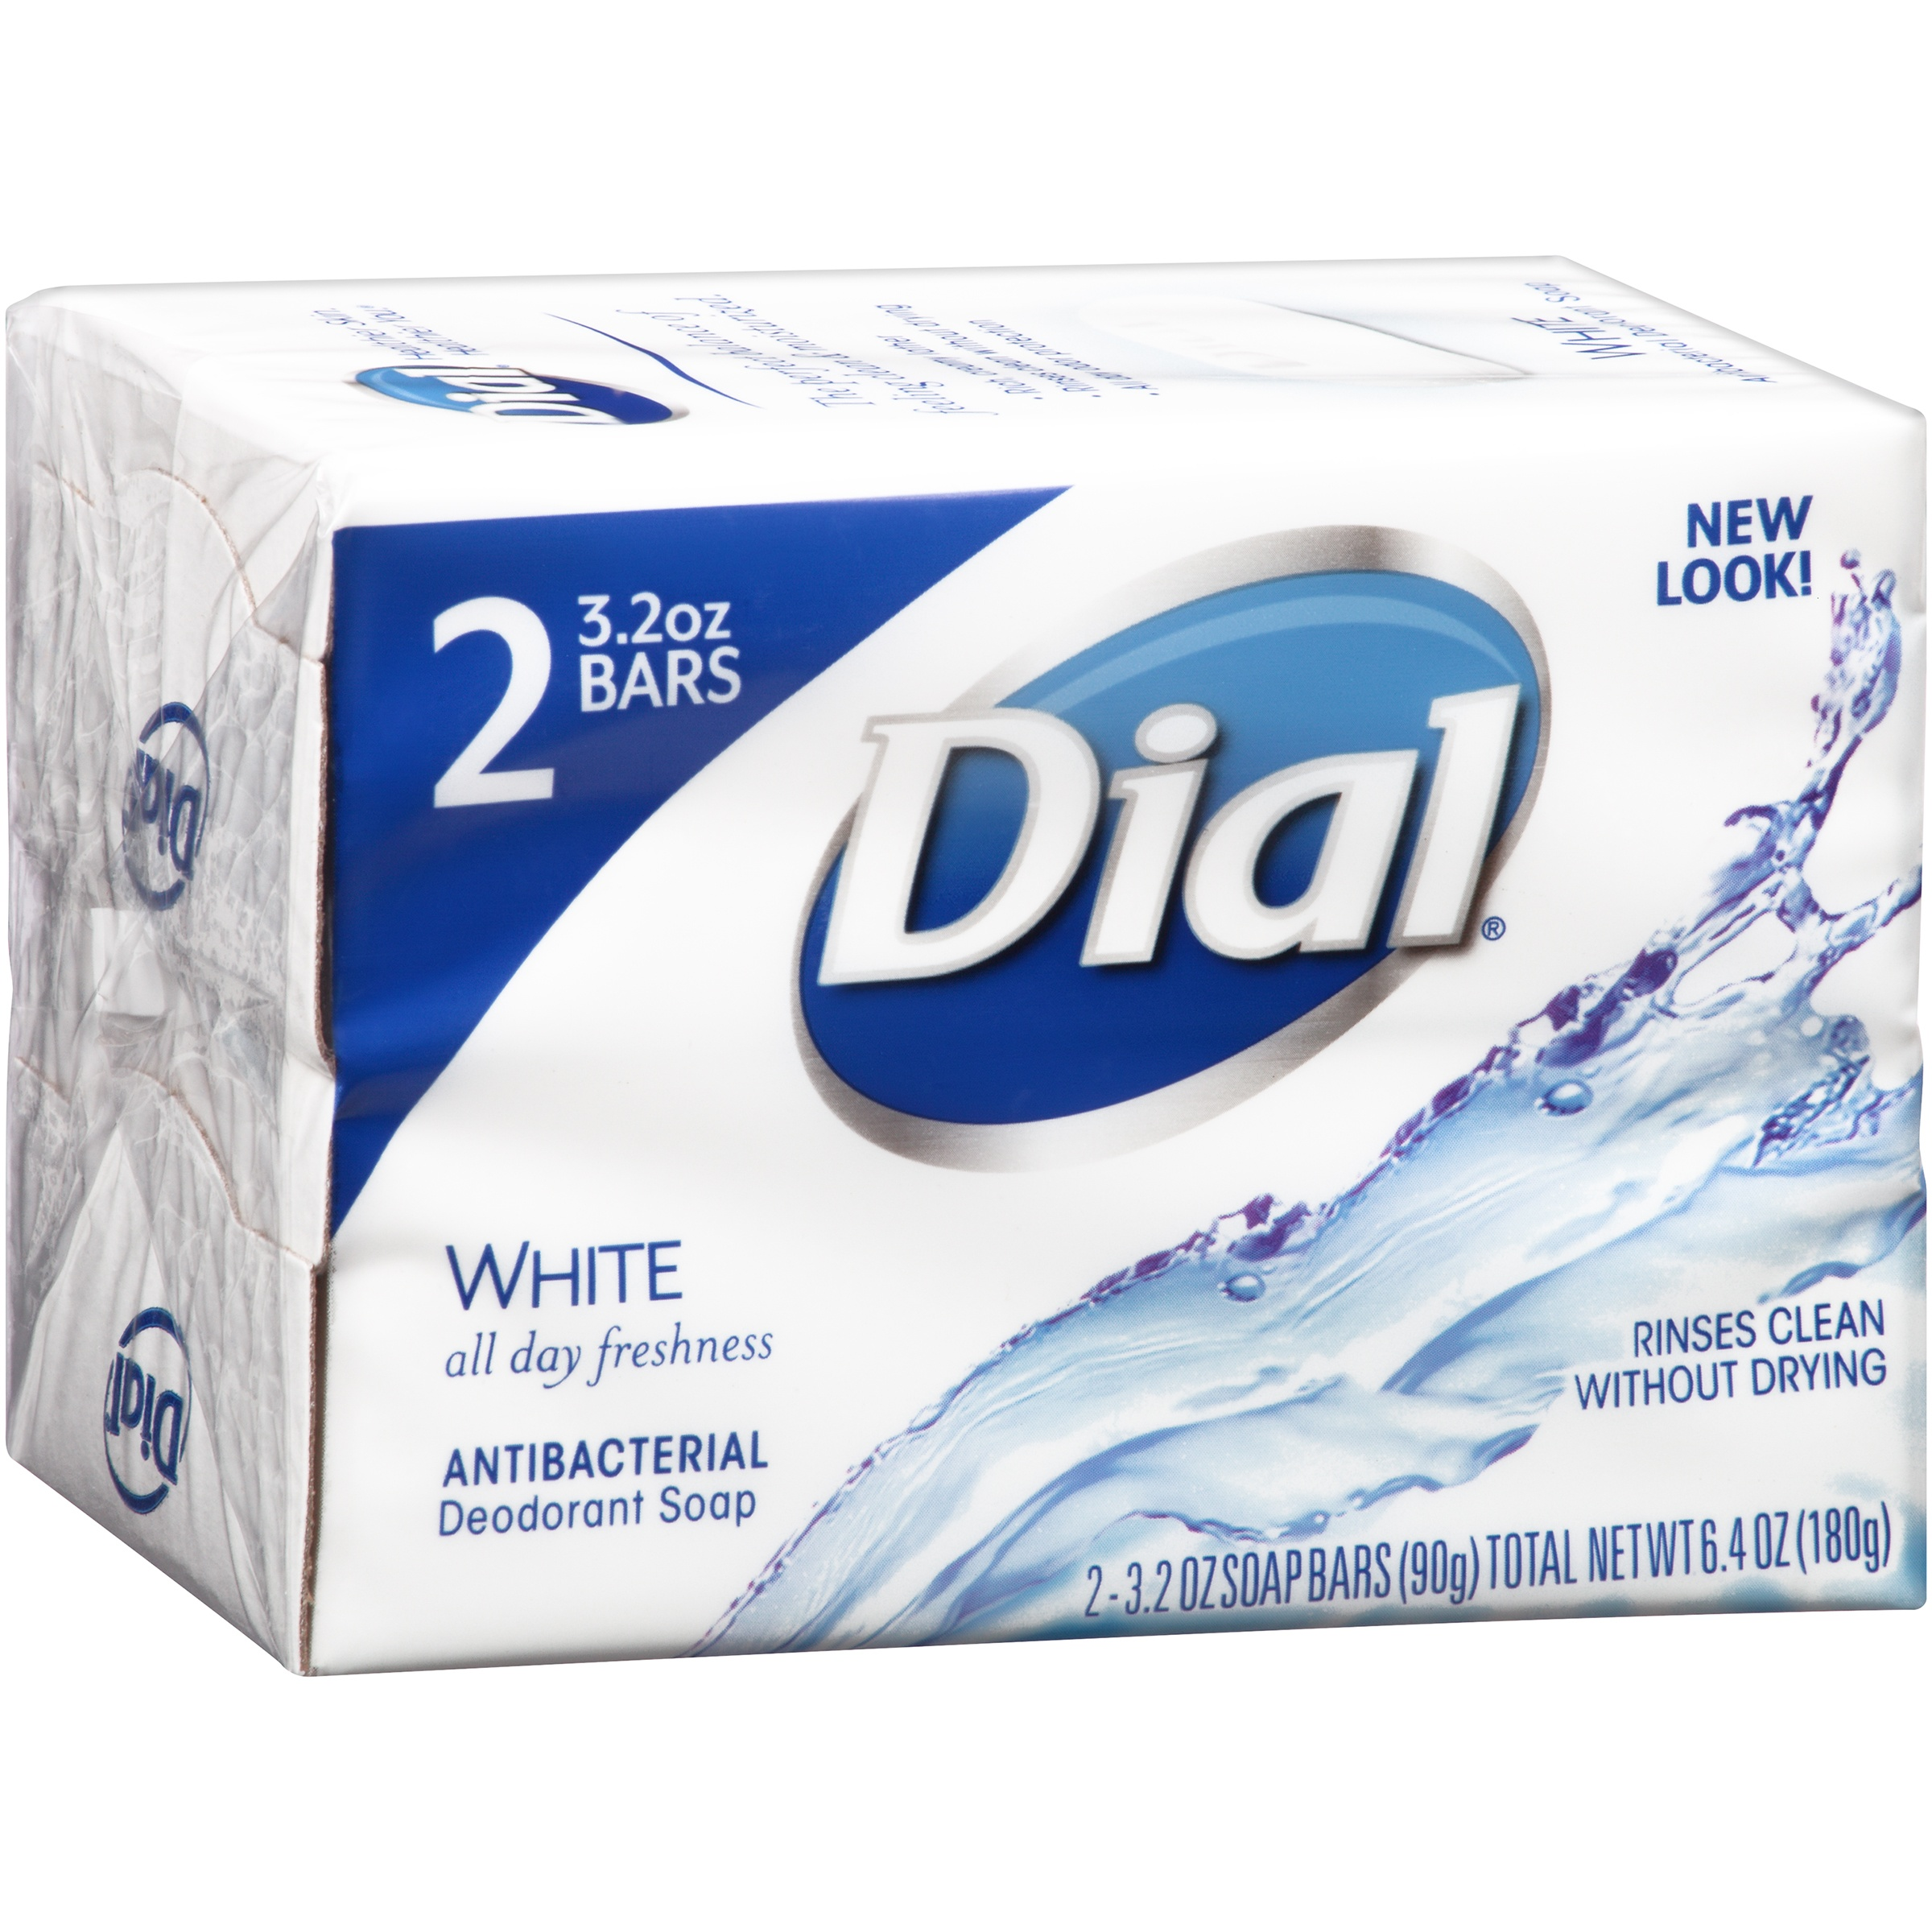 Dial® White Antibacterial Deodorant Soap 2 - 3.2 oz. Pack